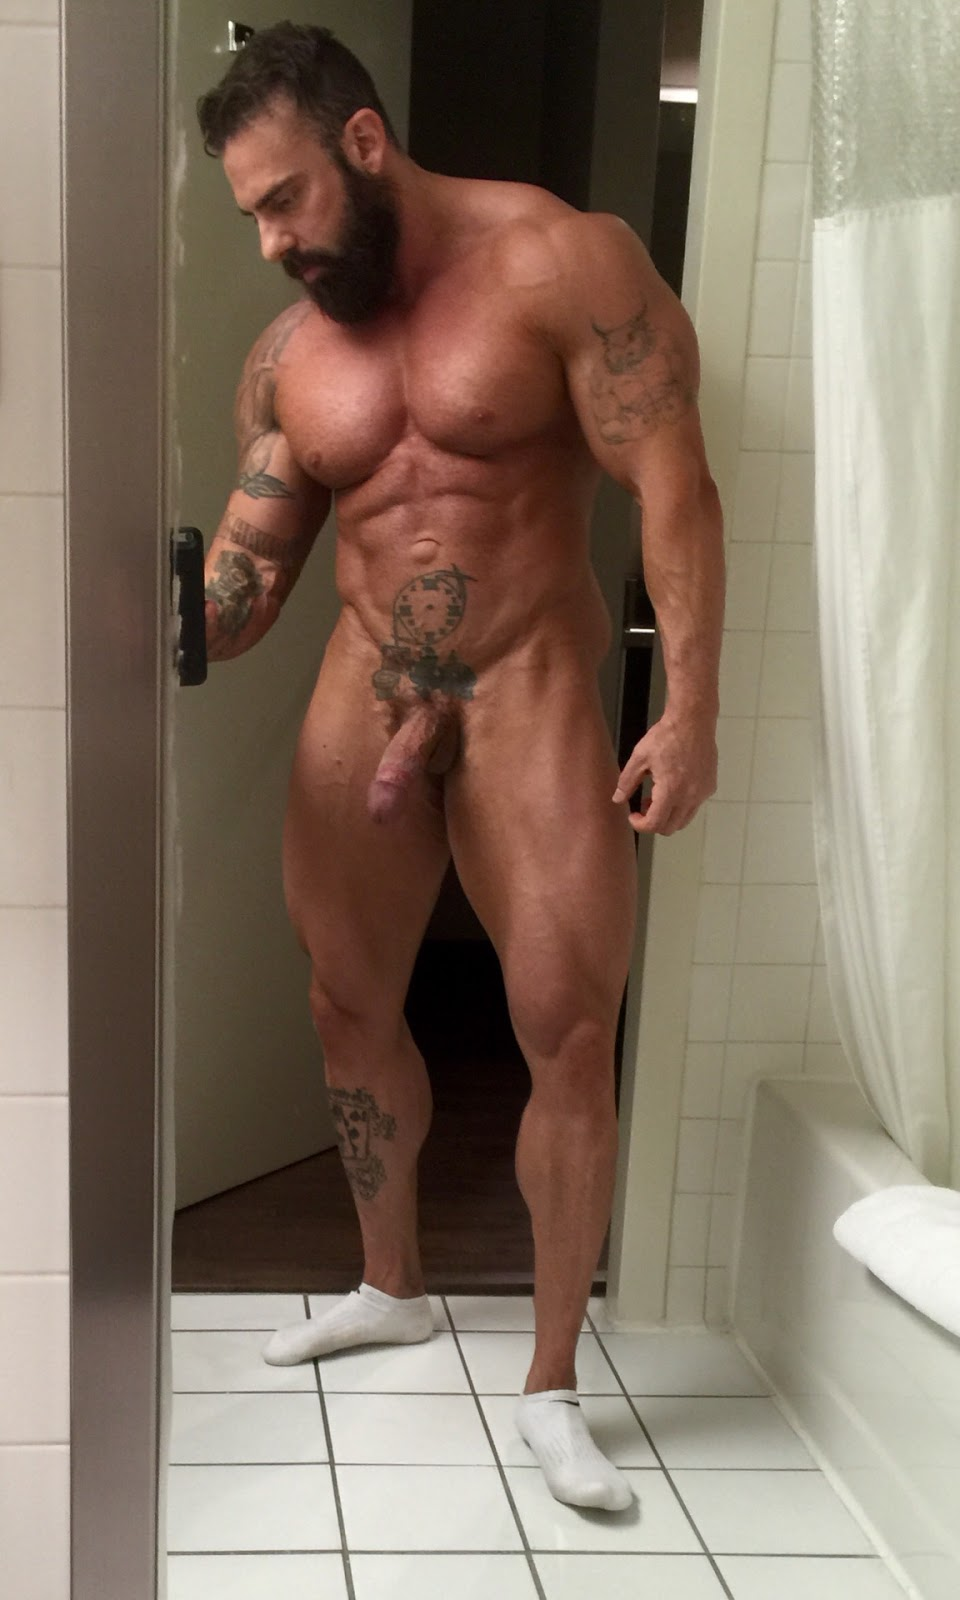 guy-handstand-muscle-big-dick-teksas-sex-chynas